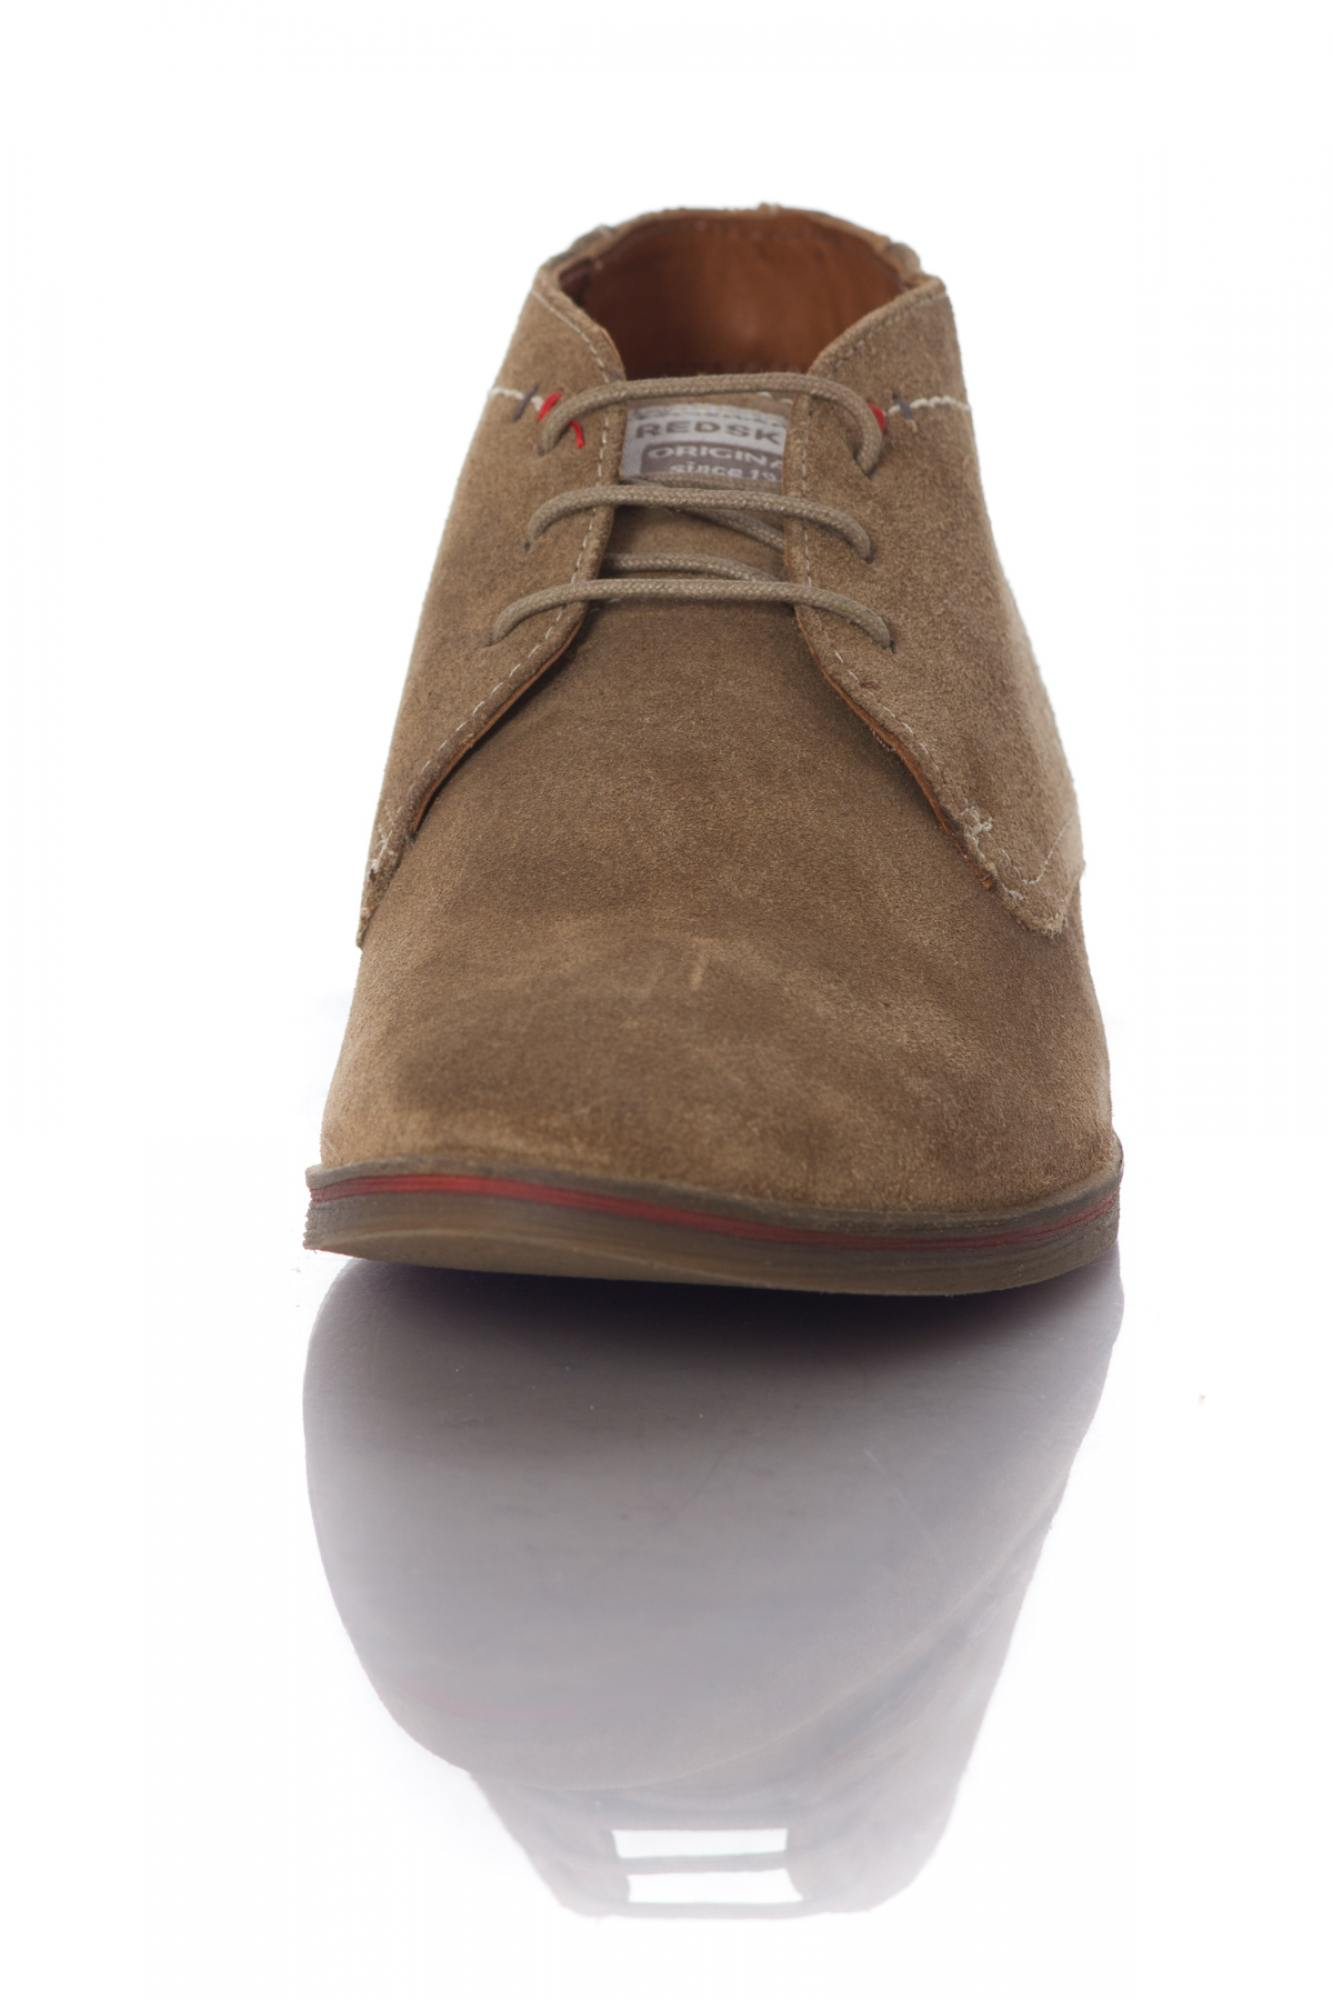 543118bd2f9f Chaussures Homme Chaussures Redskins OUDET TAUPE - Cuir-city.com